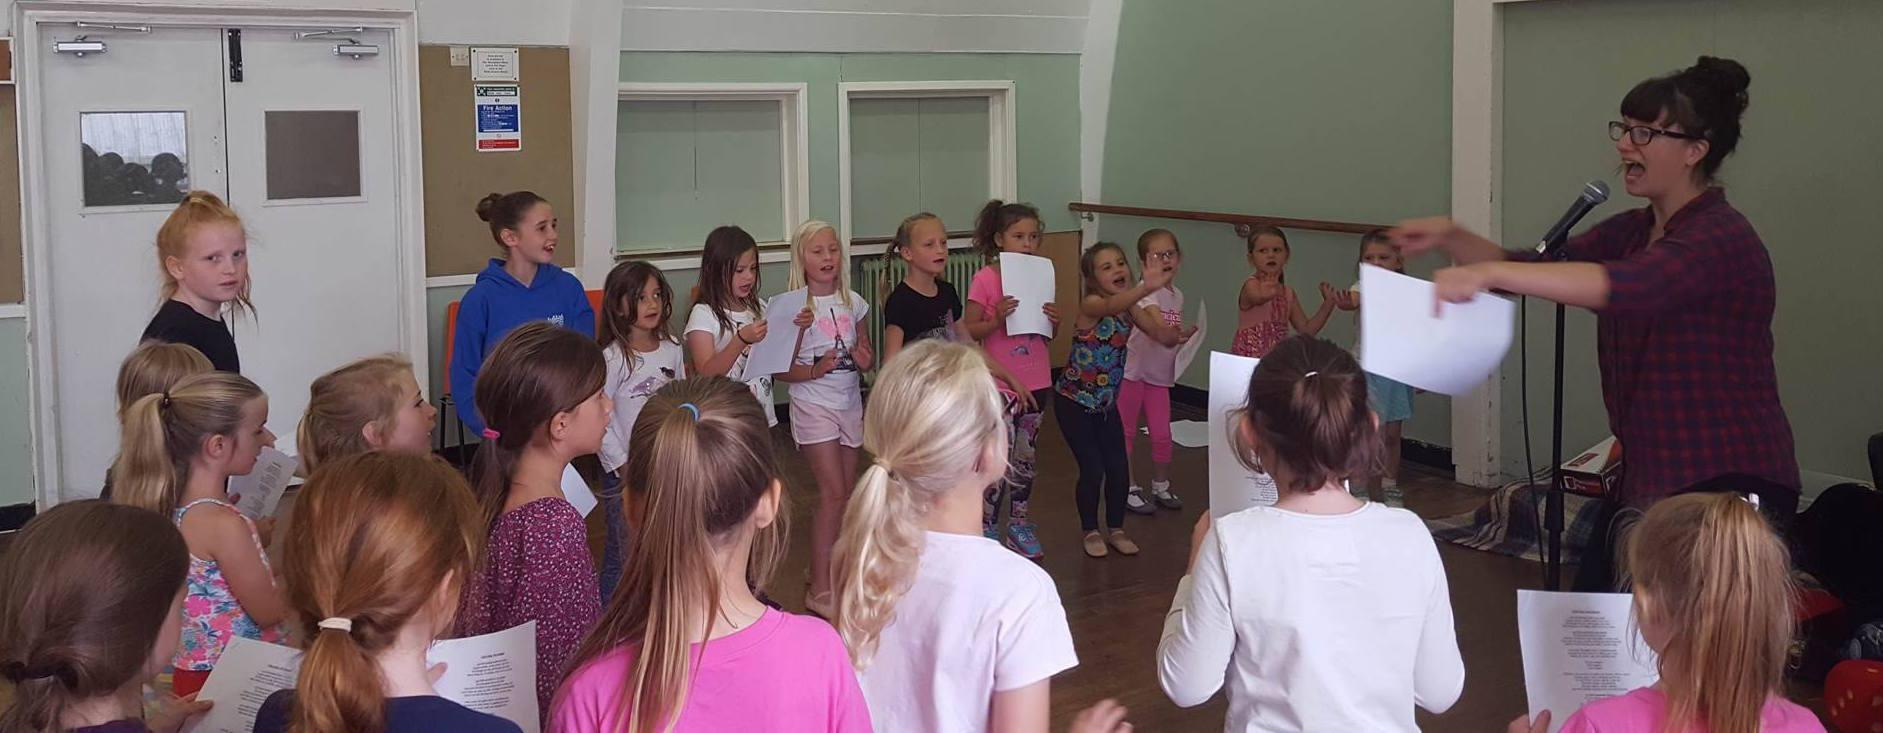 Musical theatre classes at New Forest Academy of Dance